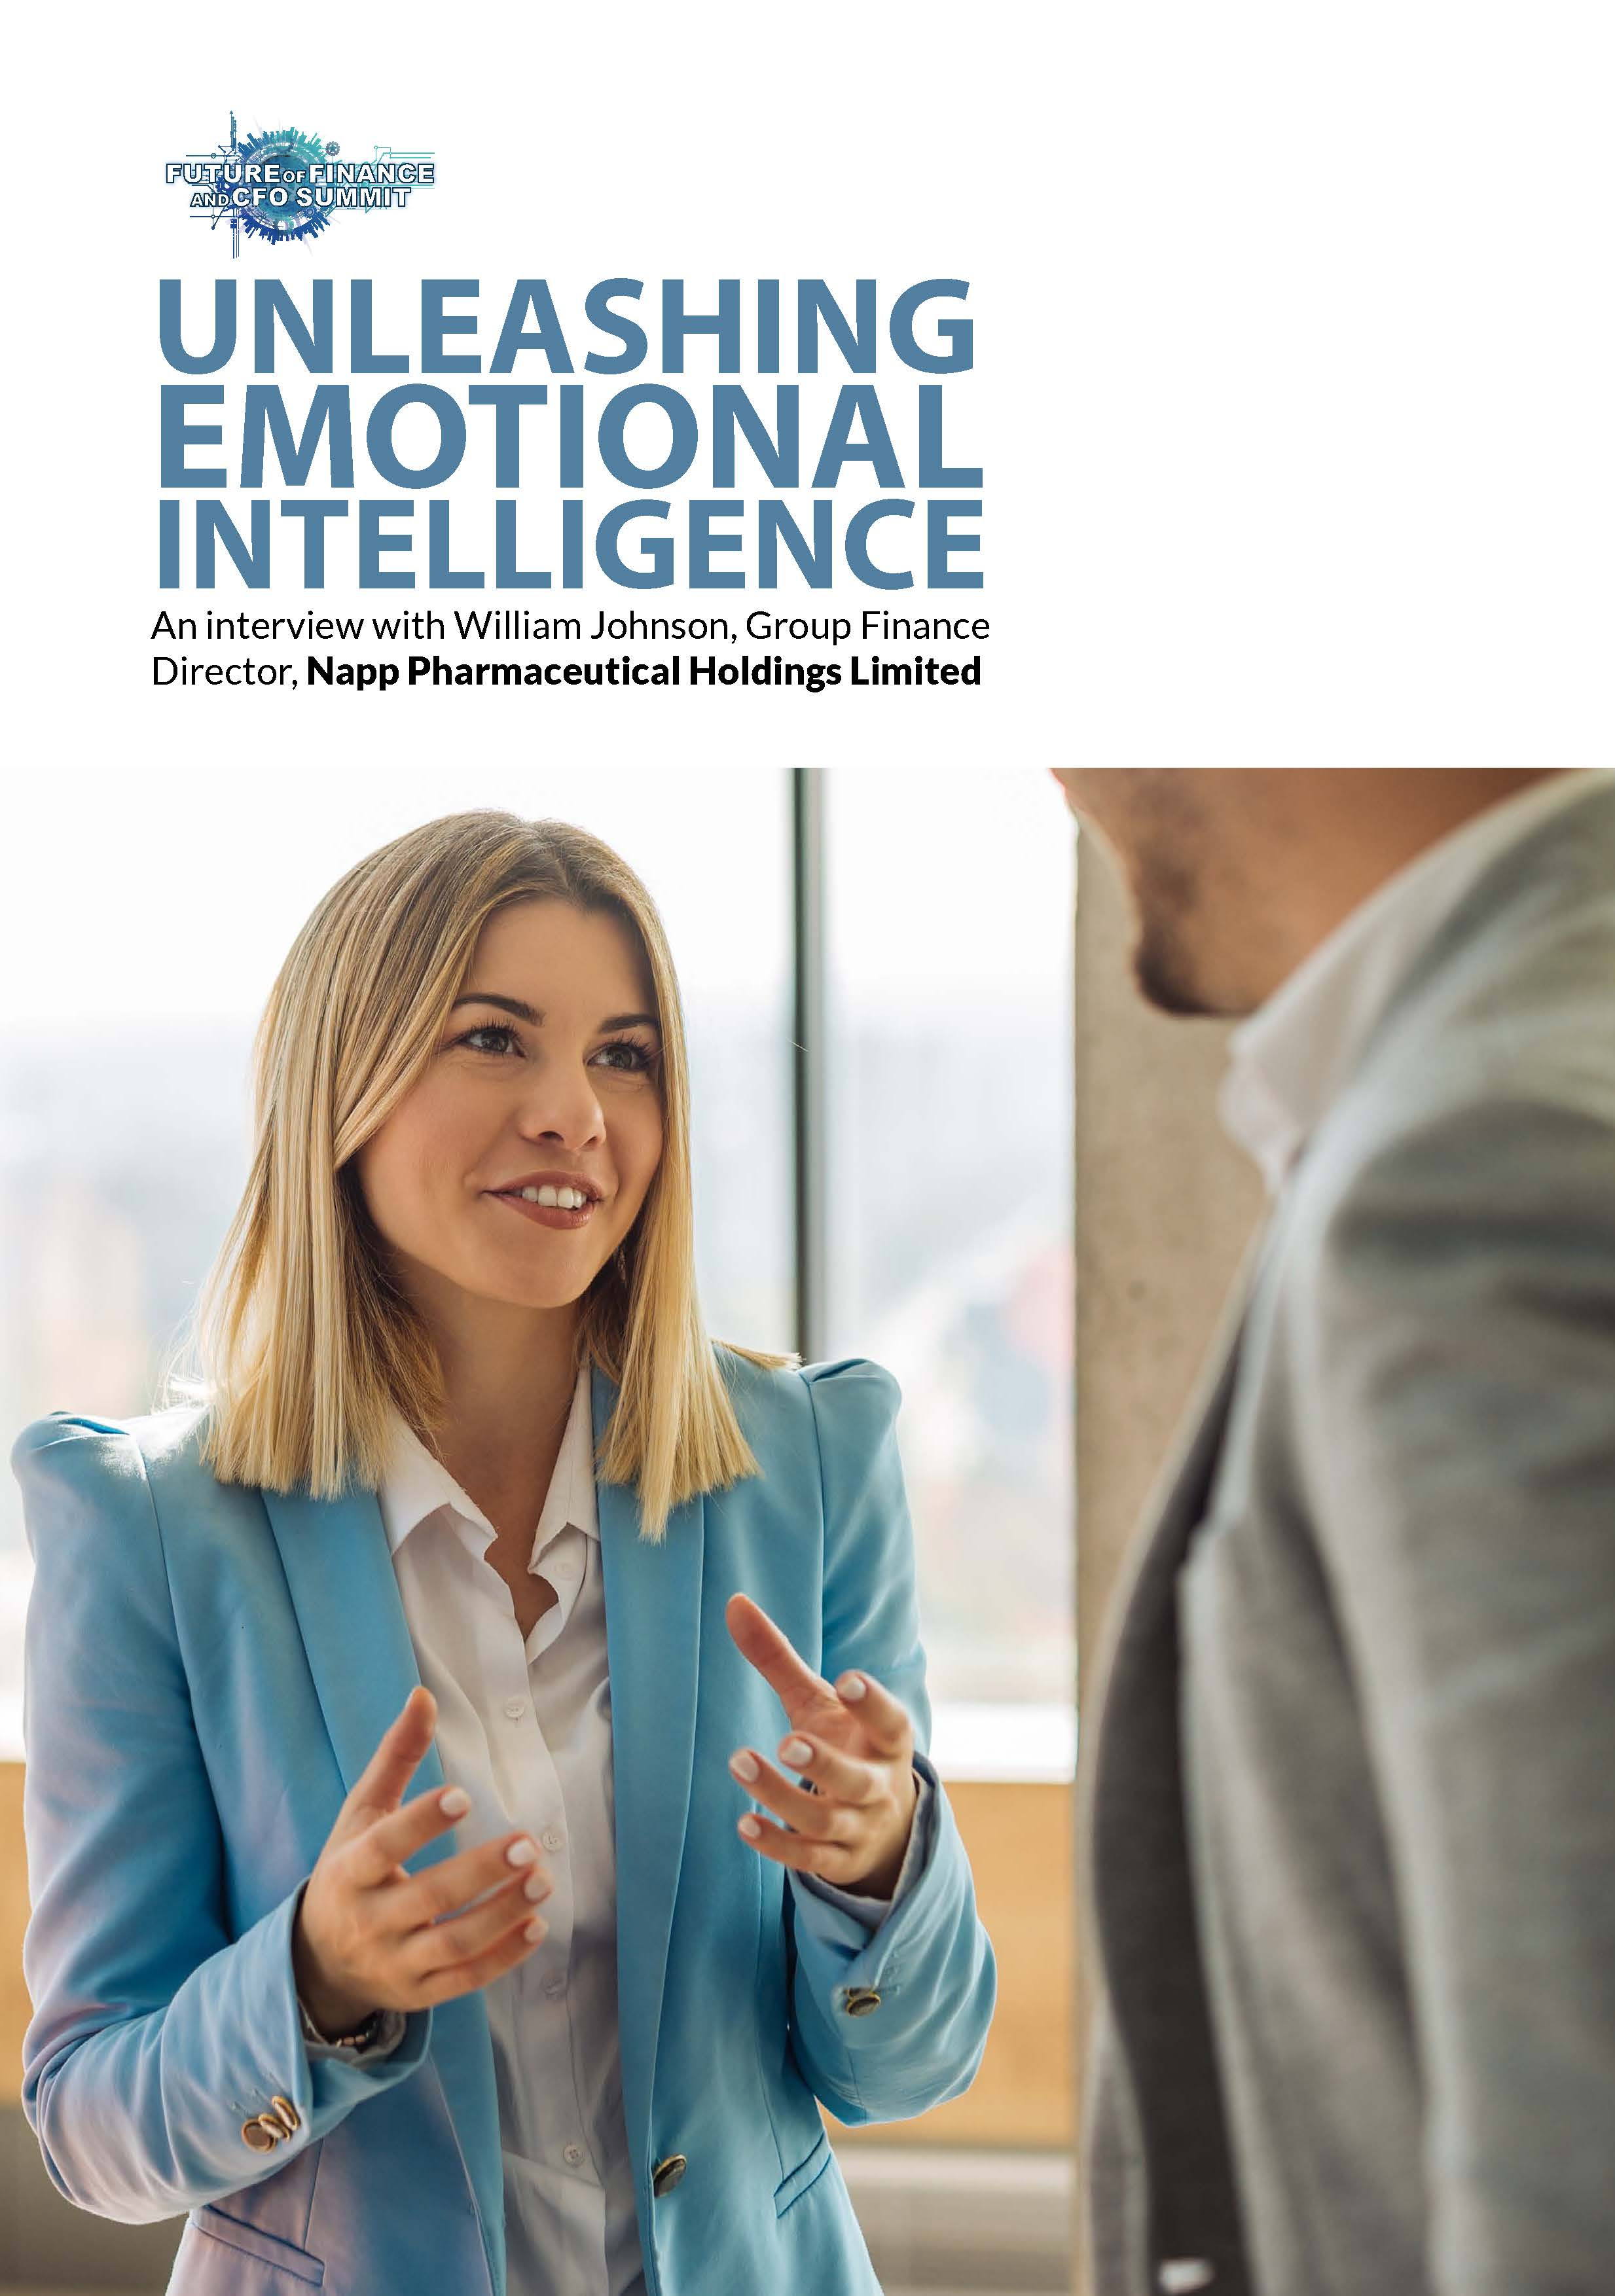 Unleashing emotional intelligence: An interview with William Johnson